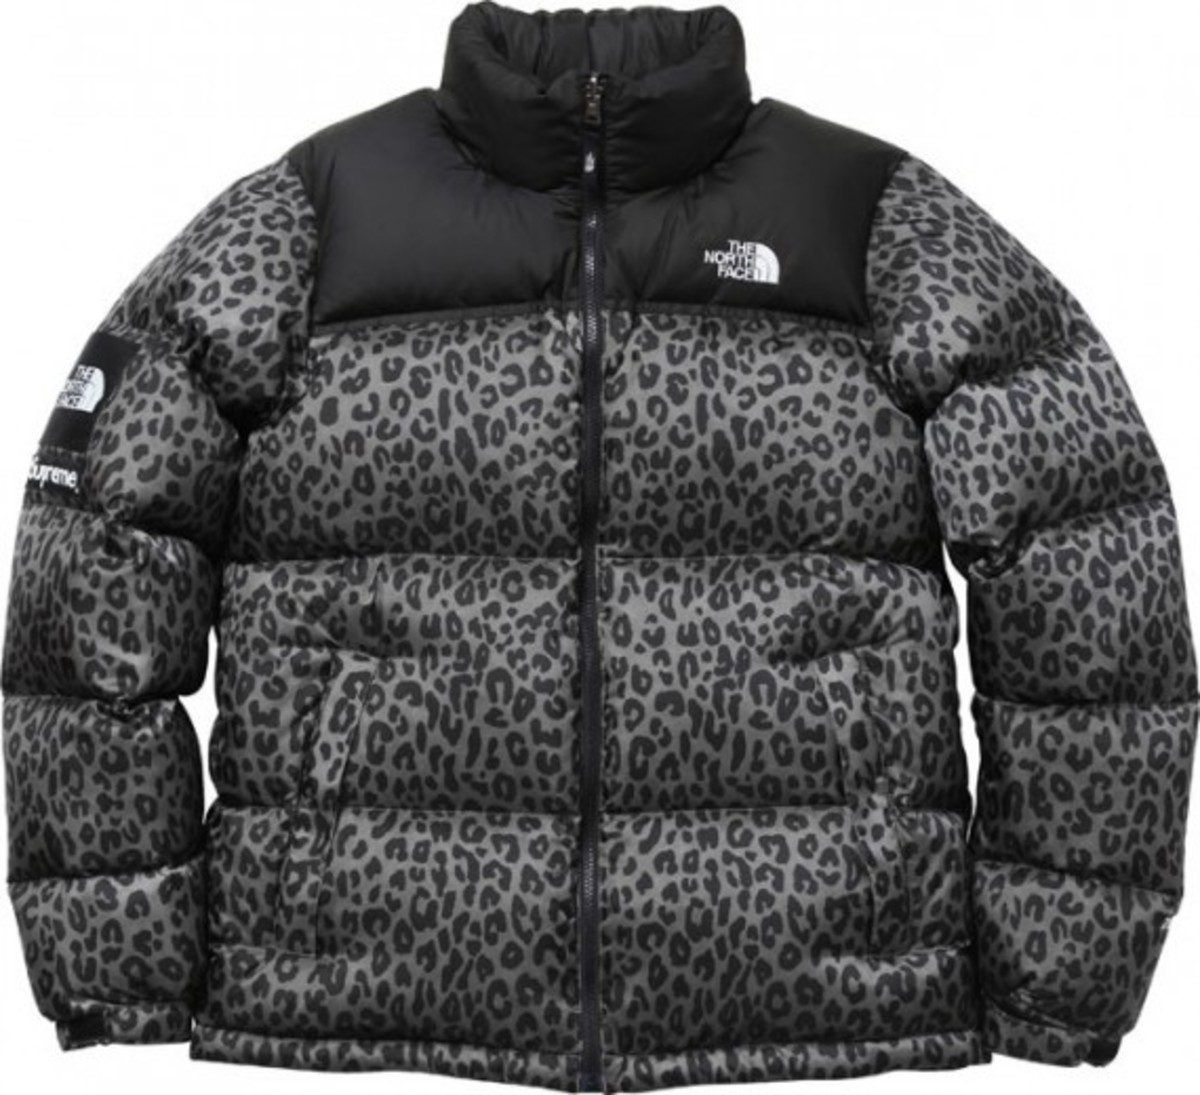 supreme-the-north-face-nuptse-down-jacket-004